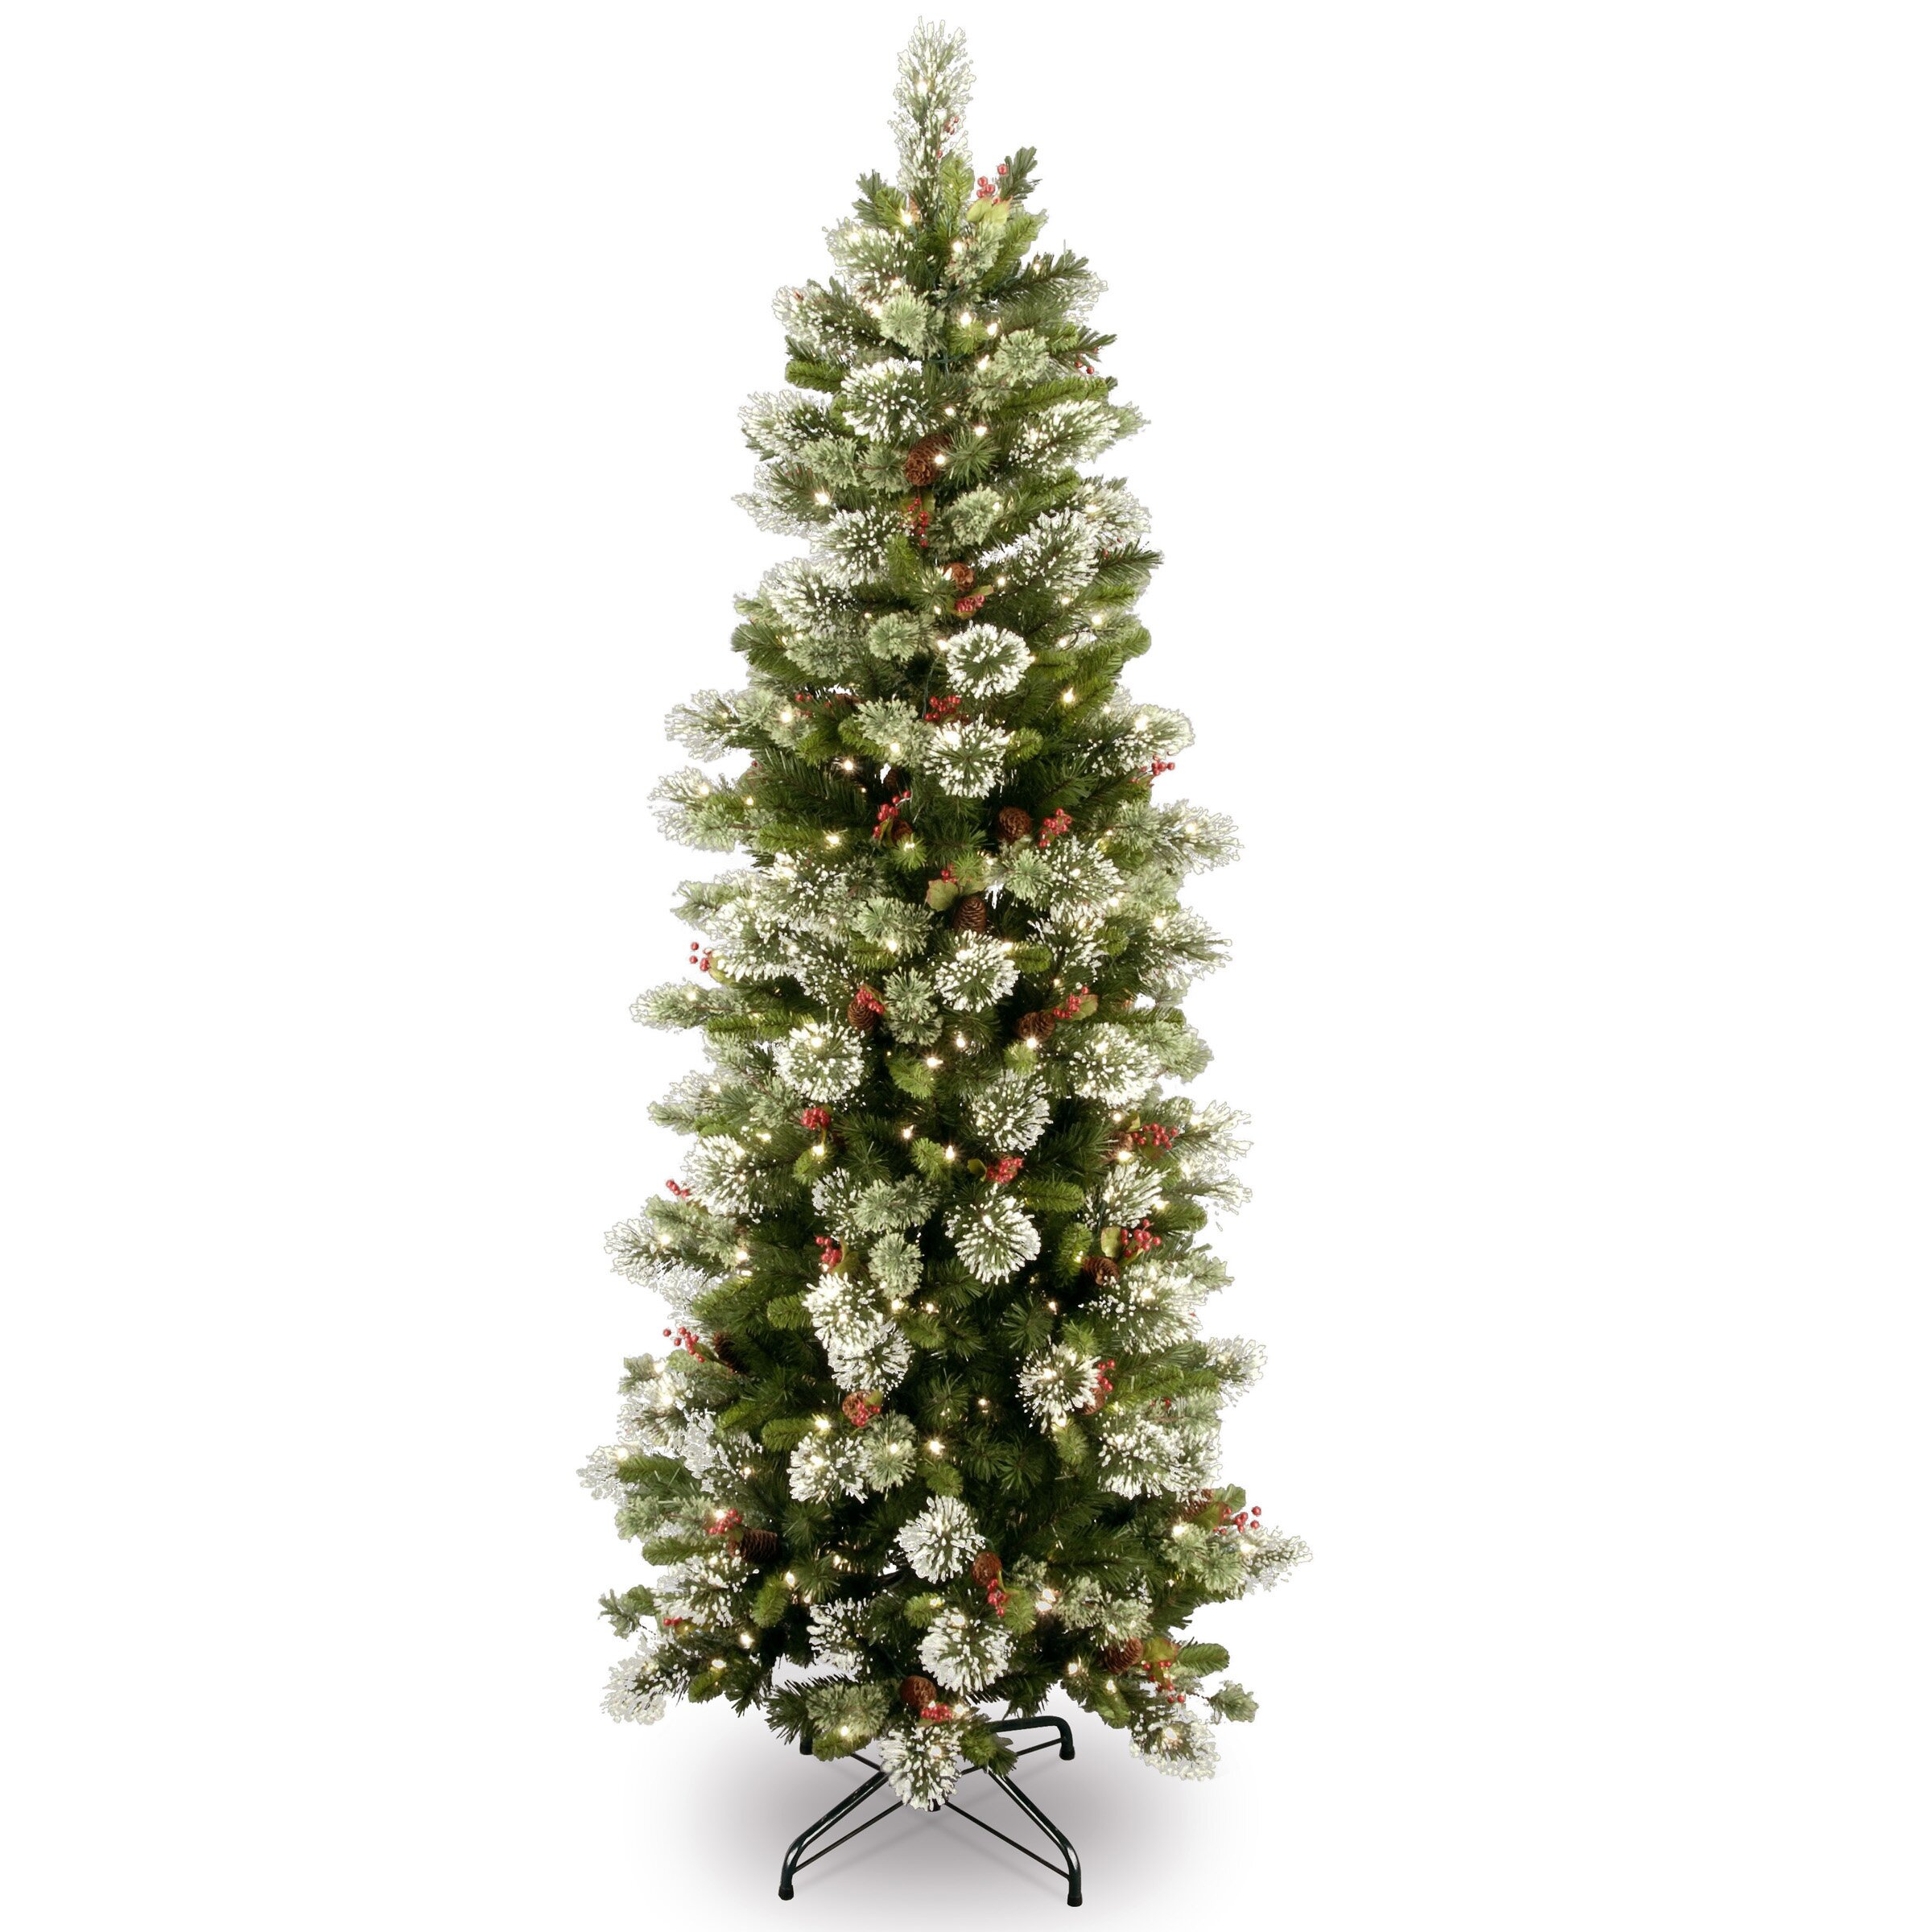 National Tree Co. Wintry Pine 7.5' Slim Artificial ...